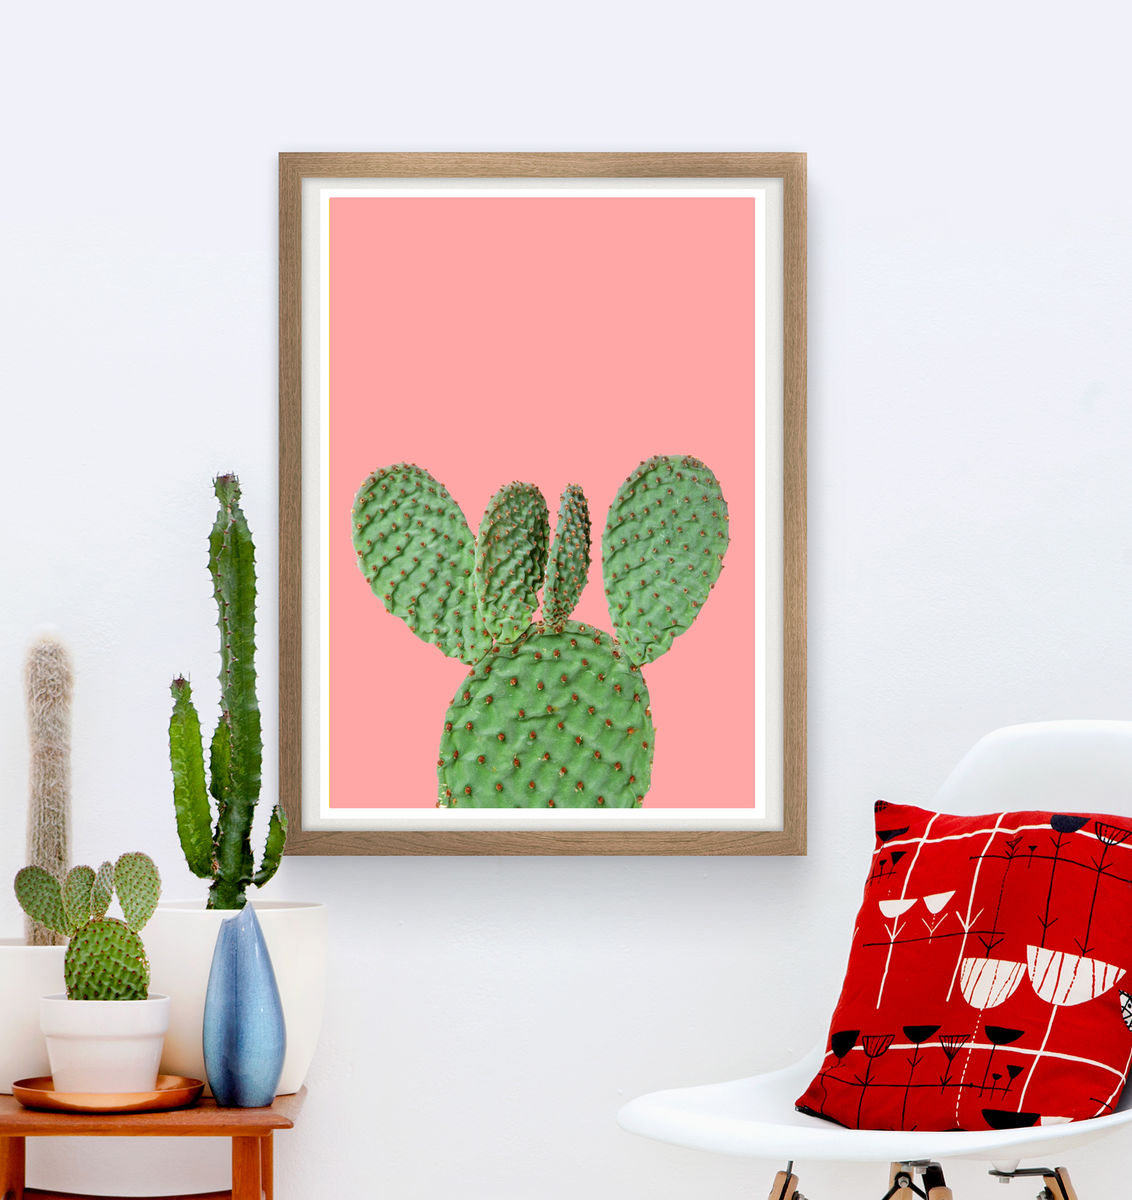 Cactus poster, botanical print, bohemian wall decor - product images  of